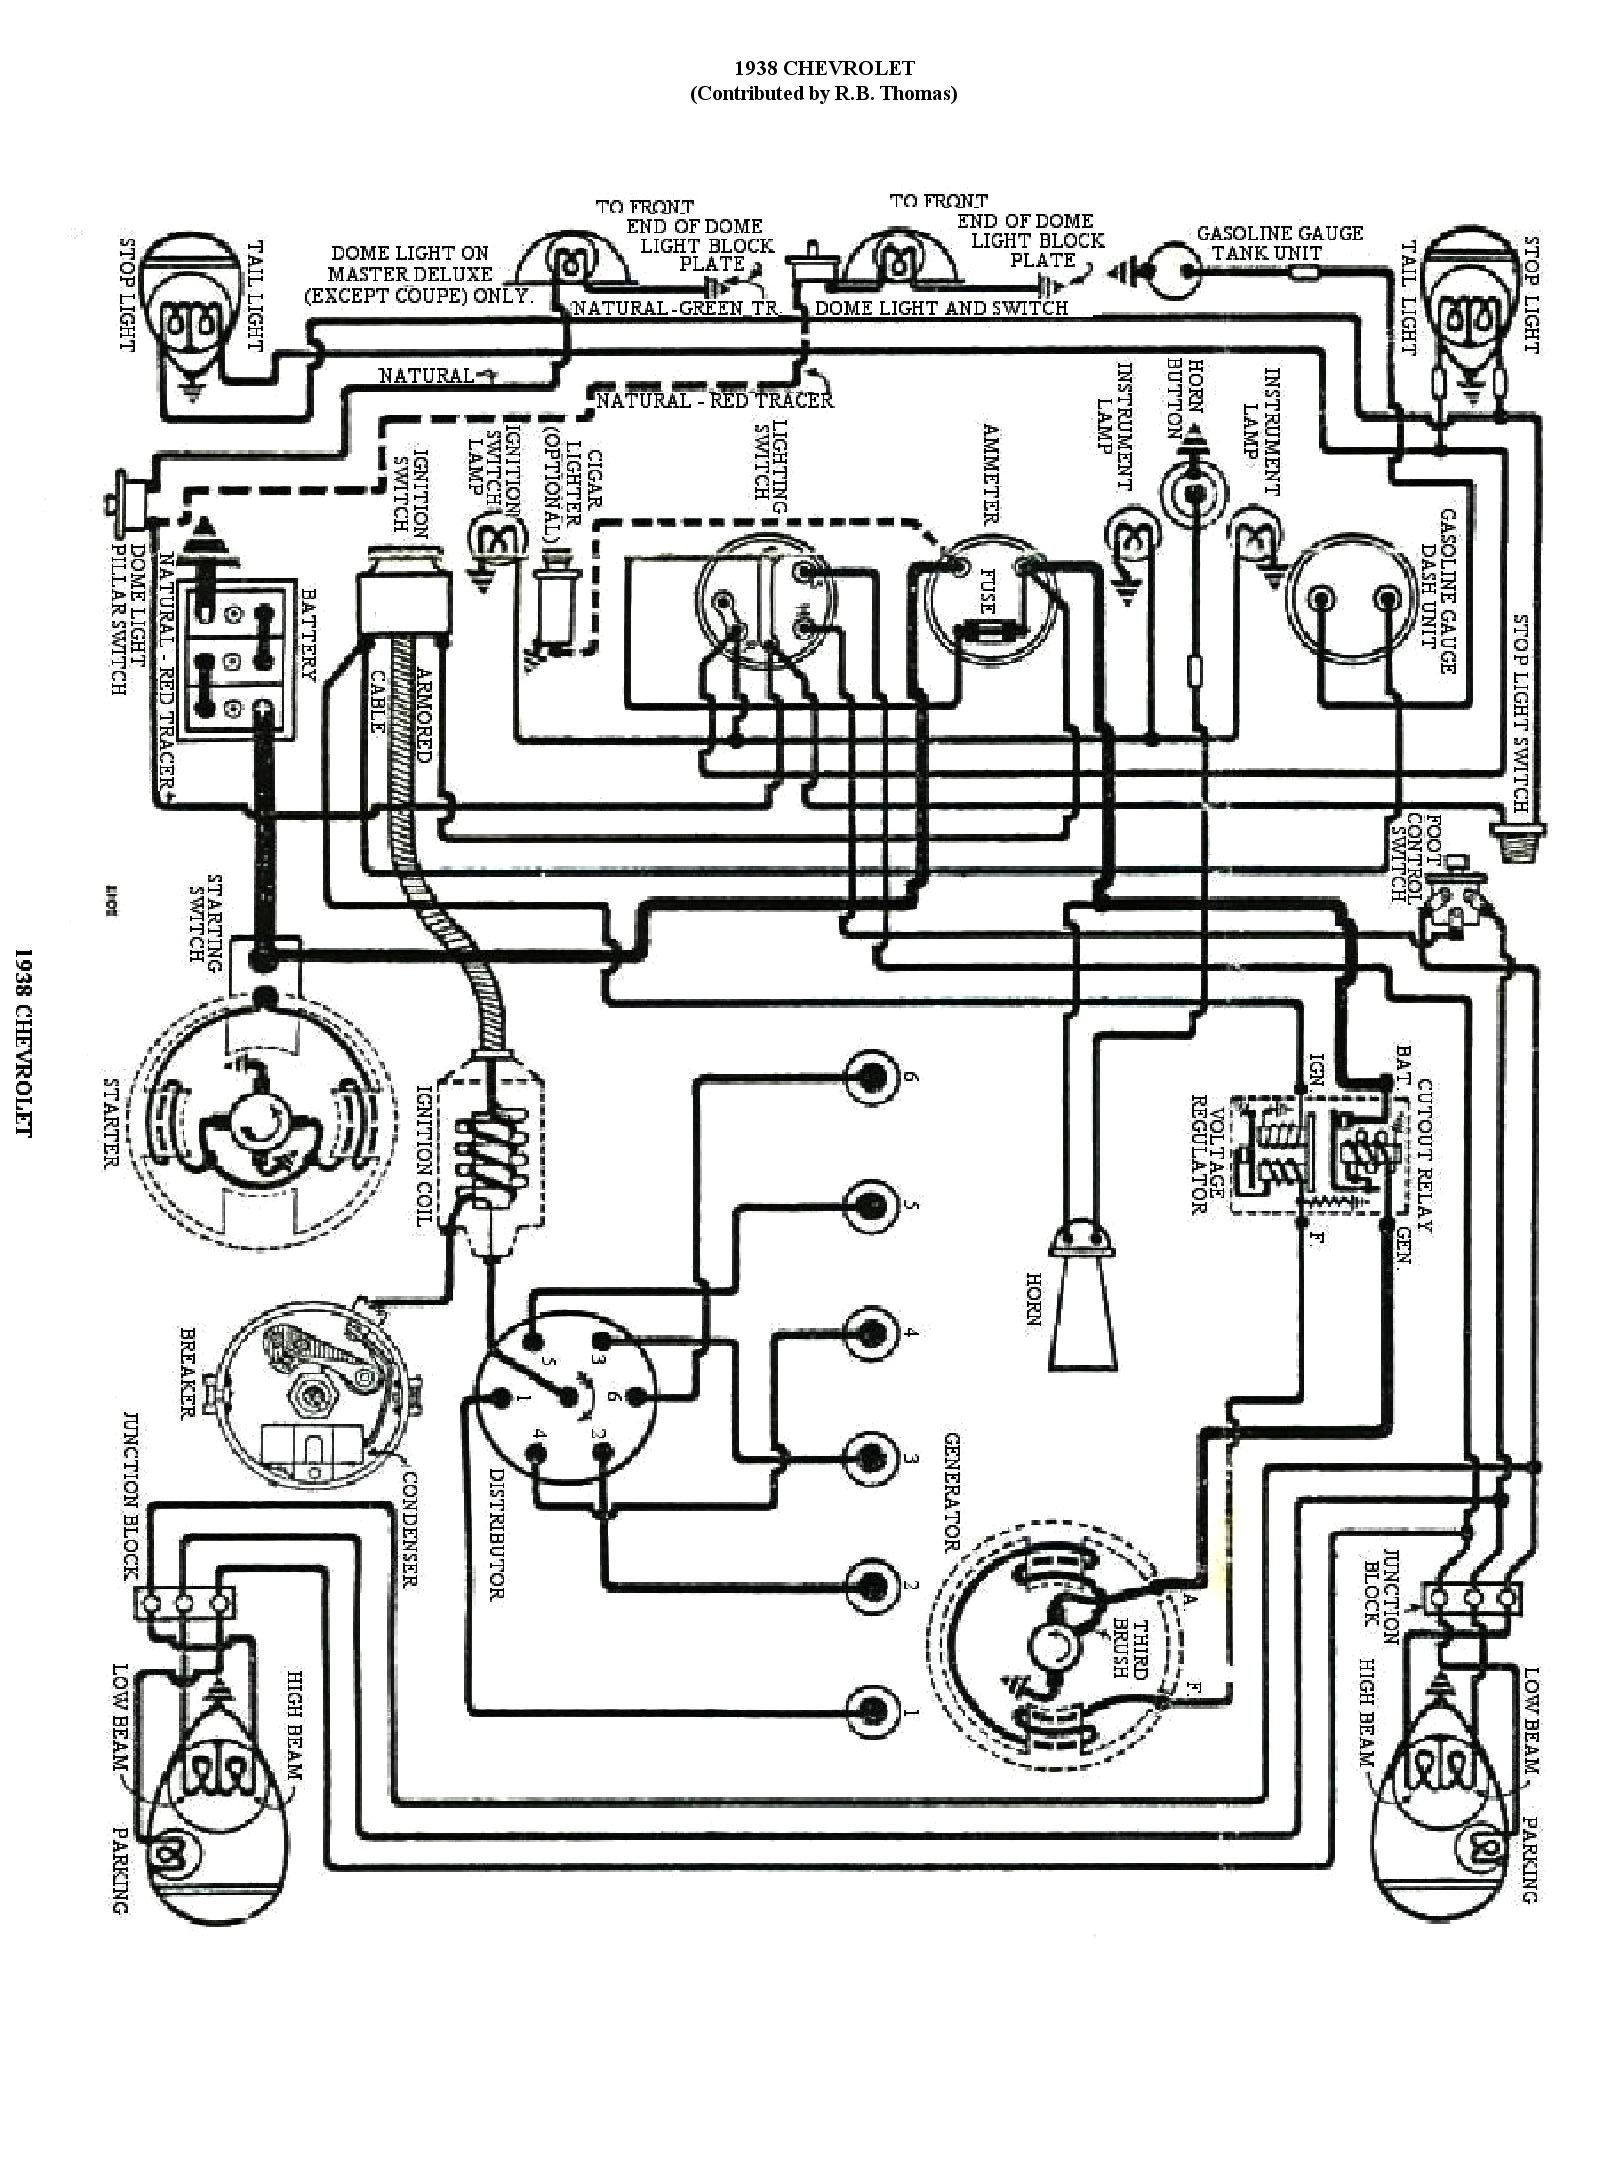 38wiring chevy wiring diagrams 6 volt universal wiring harness at cos-gaming.co